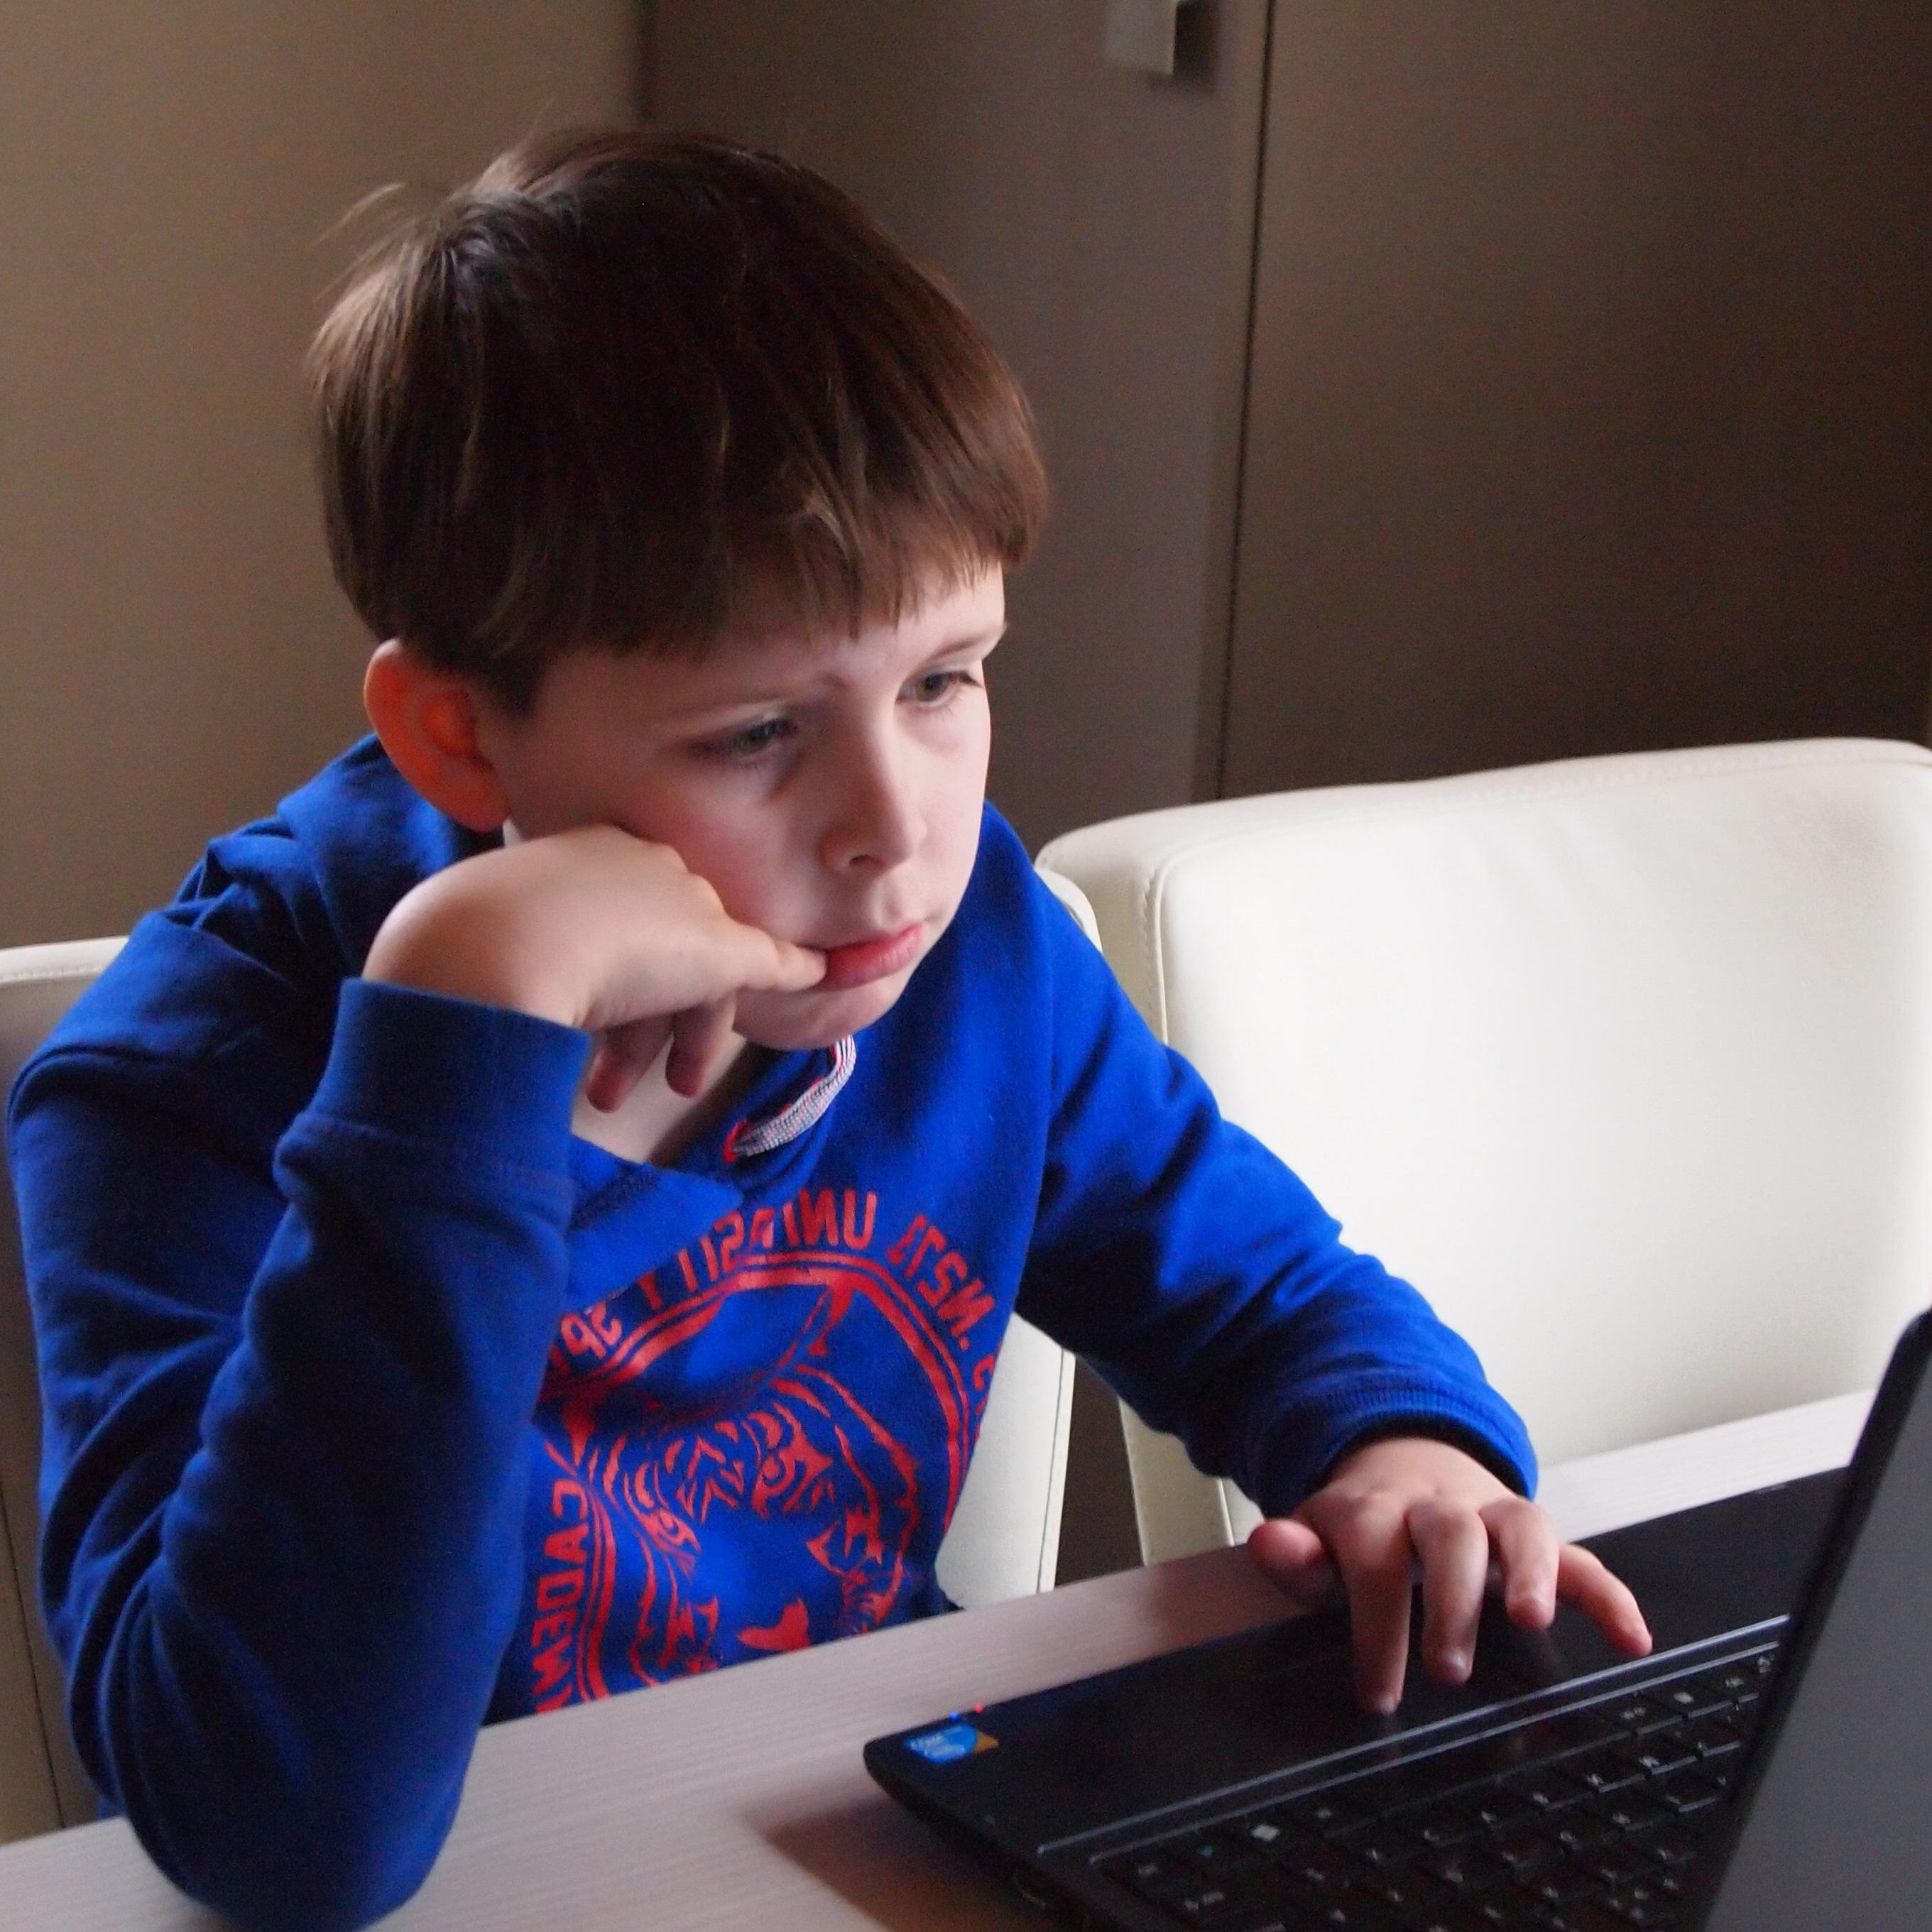 Free picture child boy internet laptop computer technology room sit